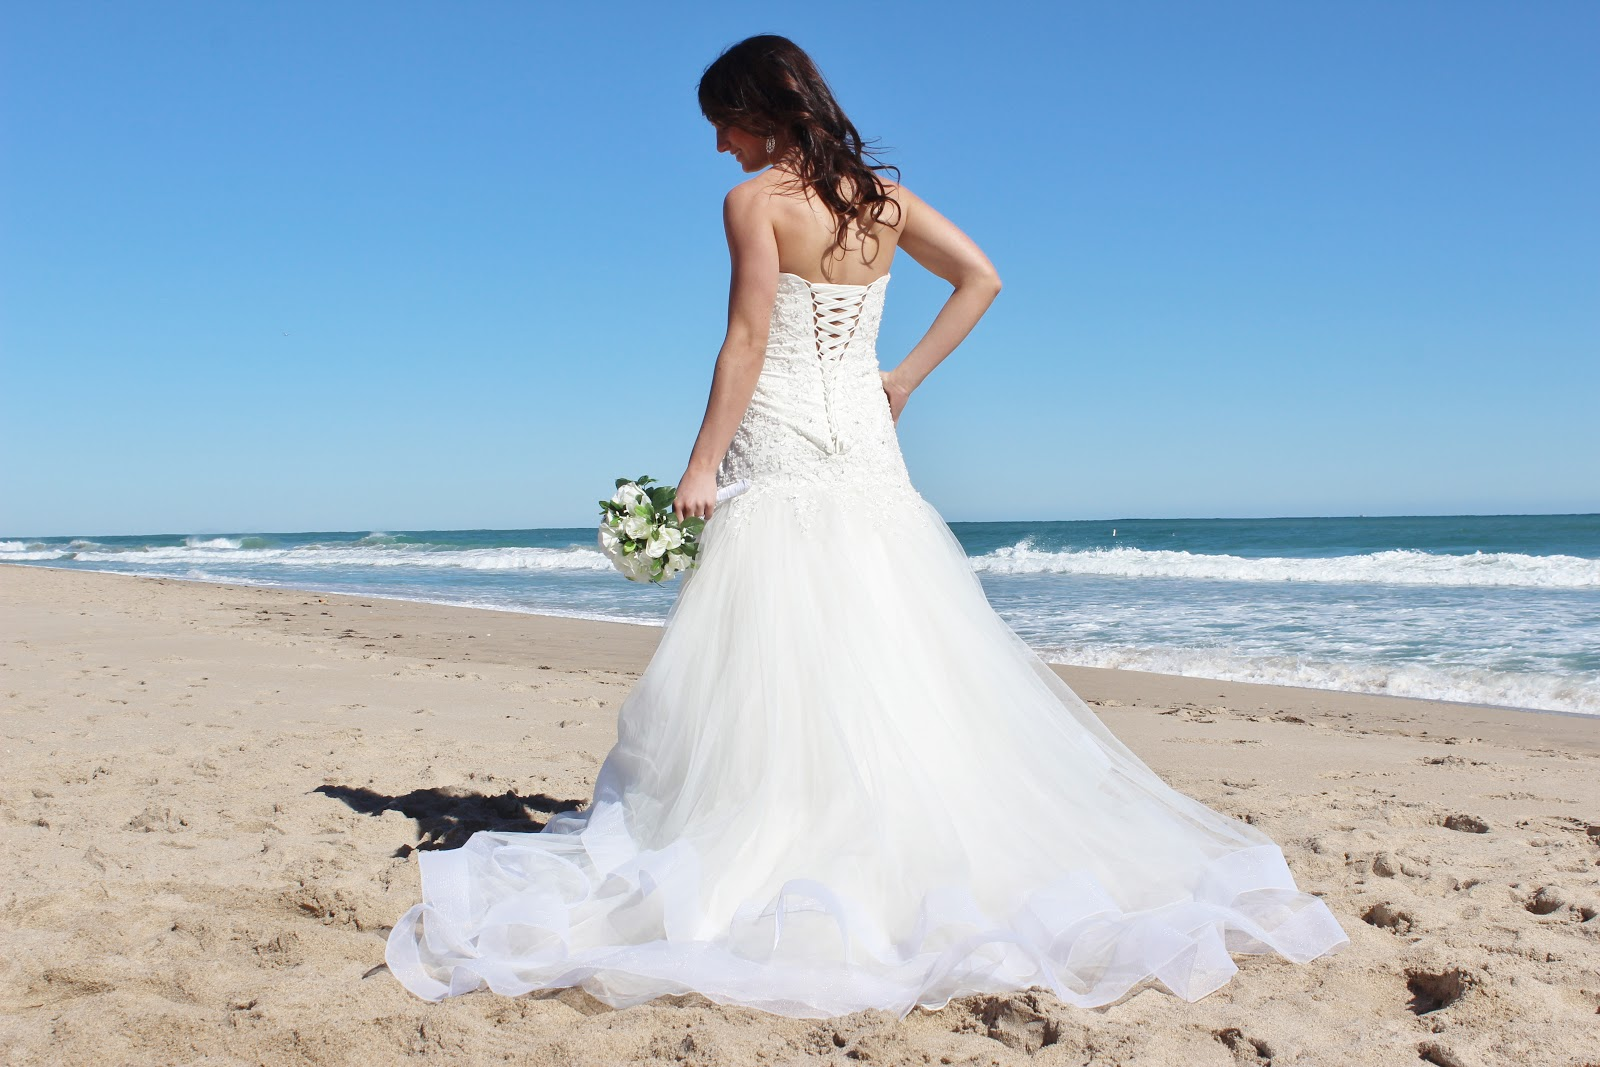 Affordable Beach Weddings! 305-793-4387: Jacquelyn